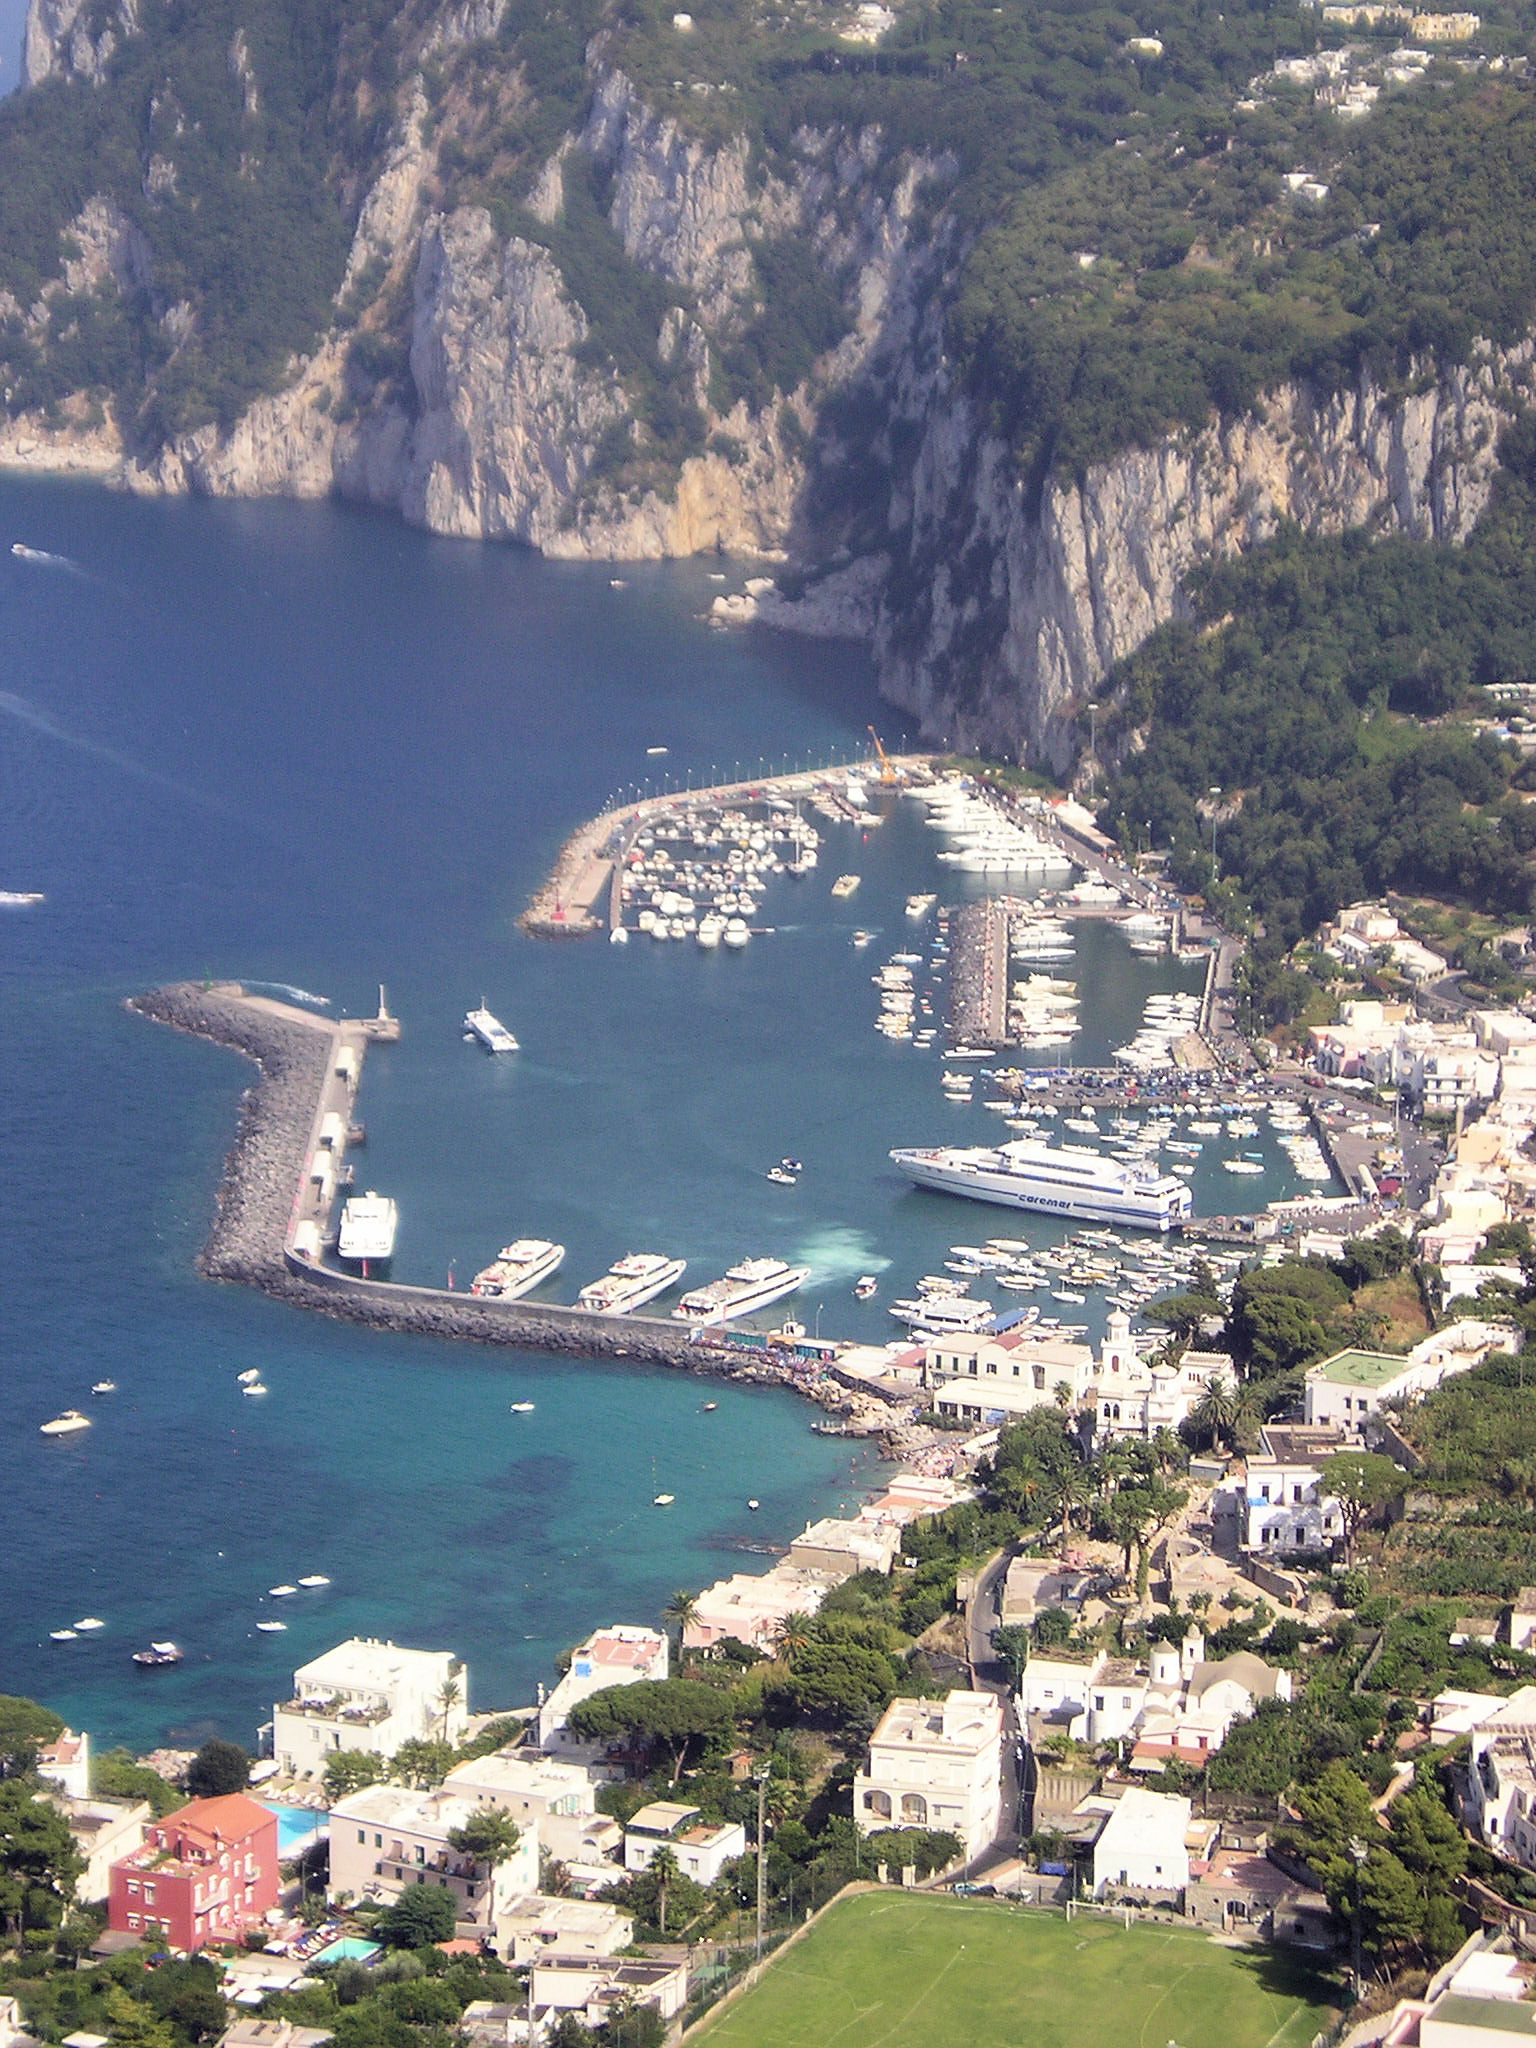 Looking down into the harbor of the village of Capri